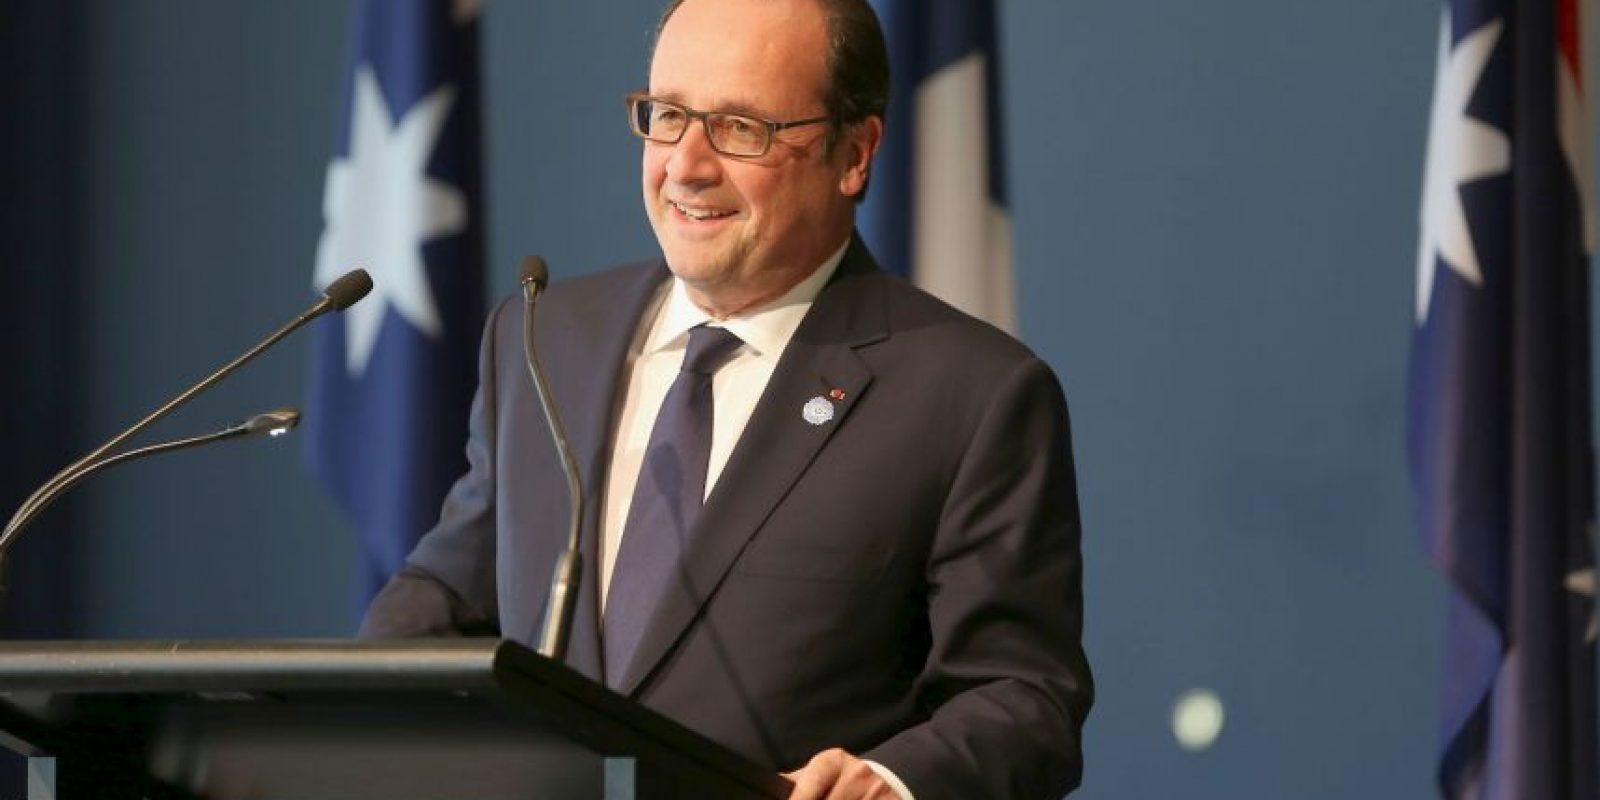 Francois Hollande: 2014, Presidente de Francia Foto: Getty Images